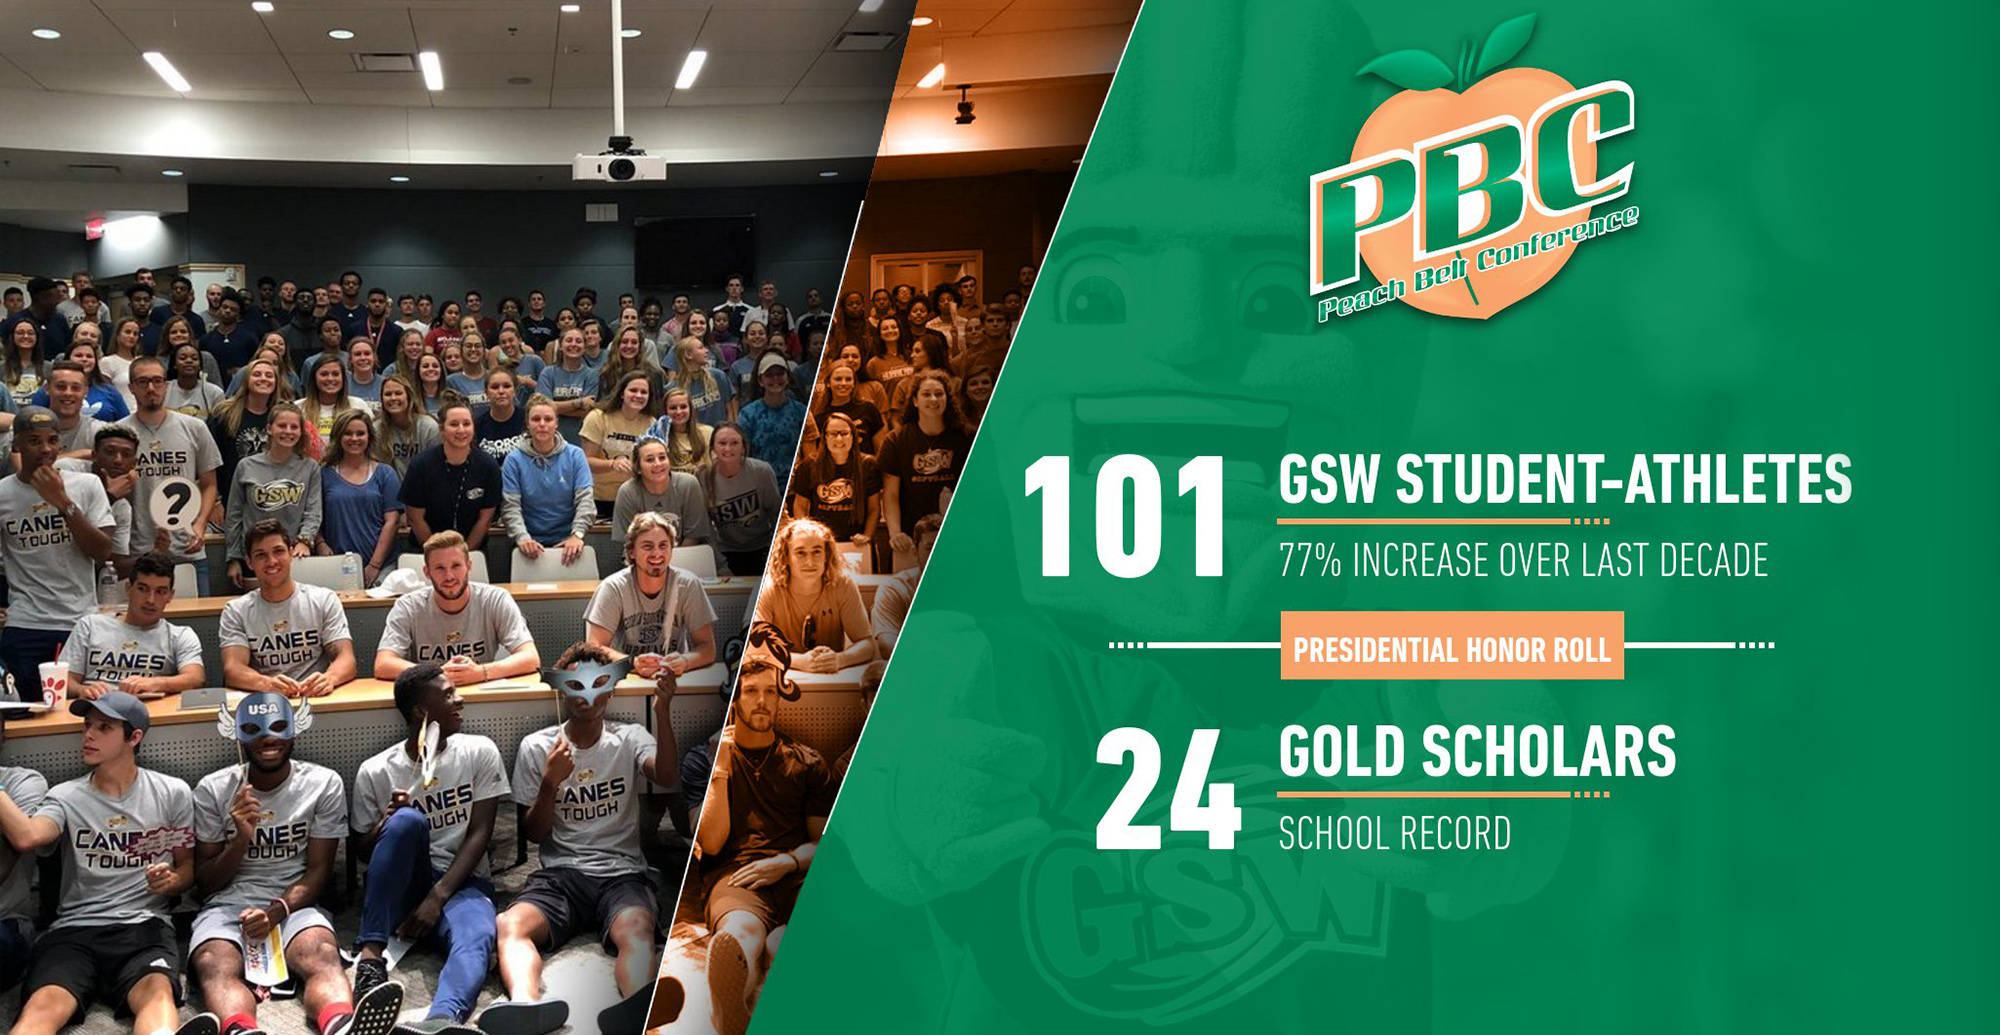 GSW Reaches New Milestone on PBC Presidential Honor Roll